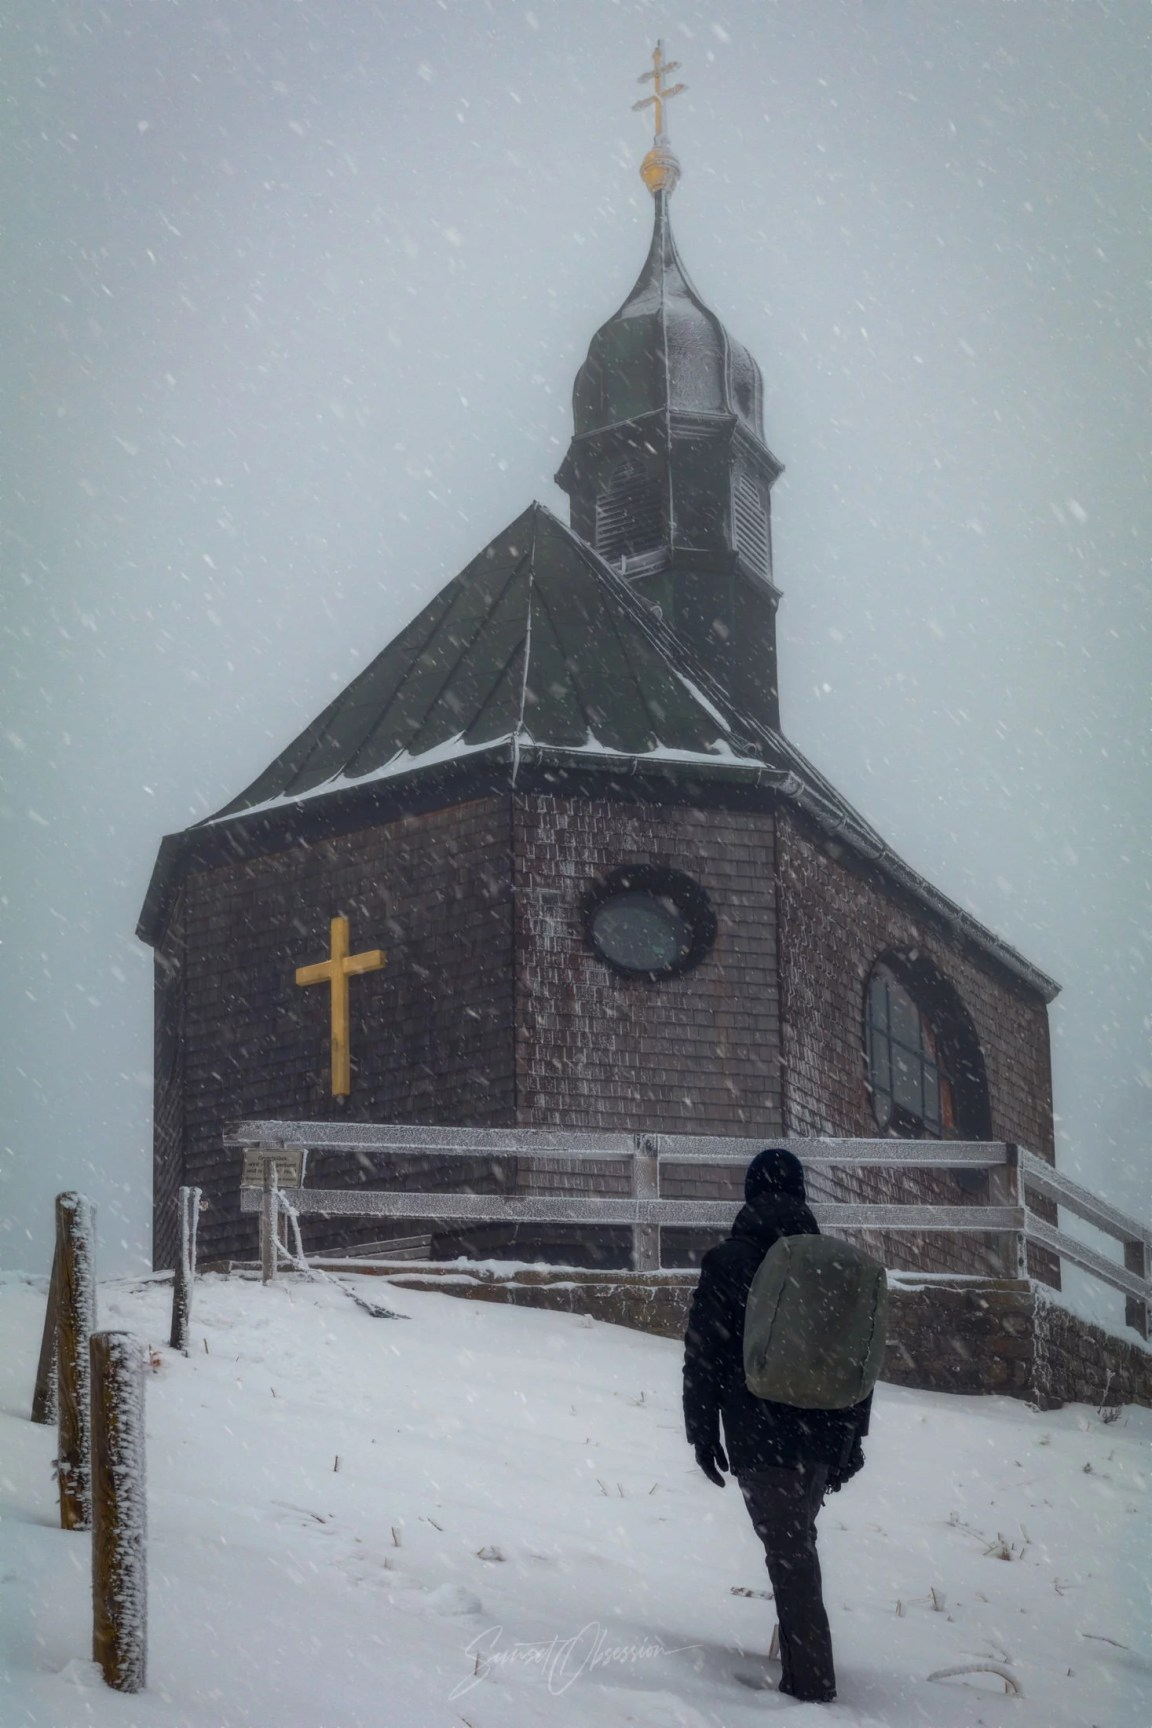 A chapel on top of the mountain, South Germany